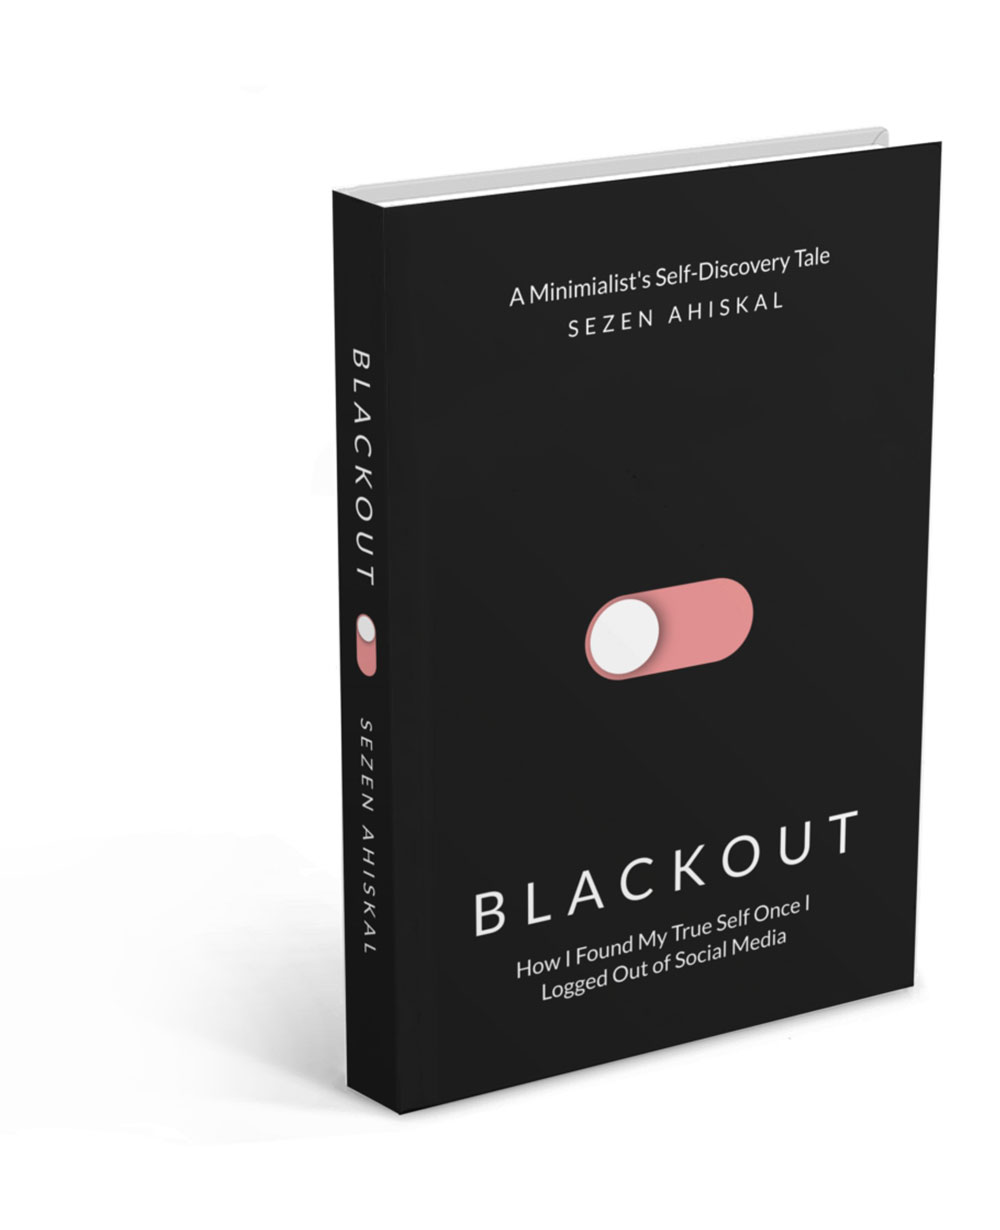 Blackout by Sezen Ahıskal